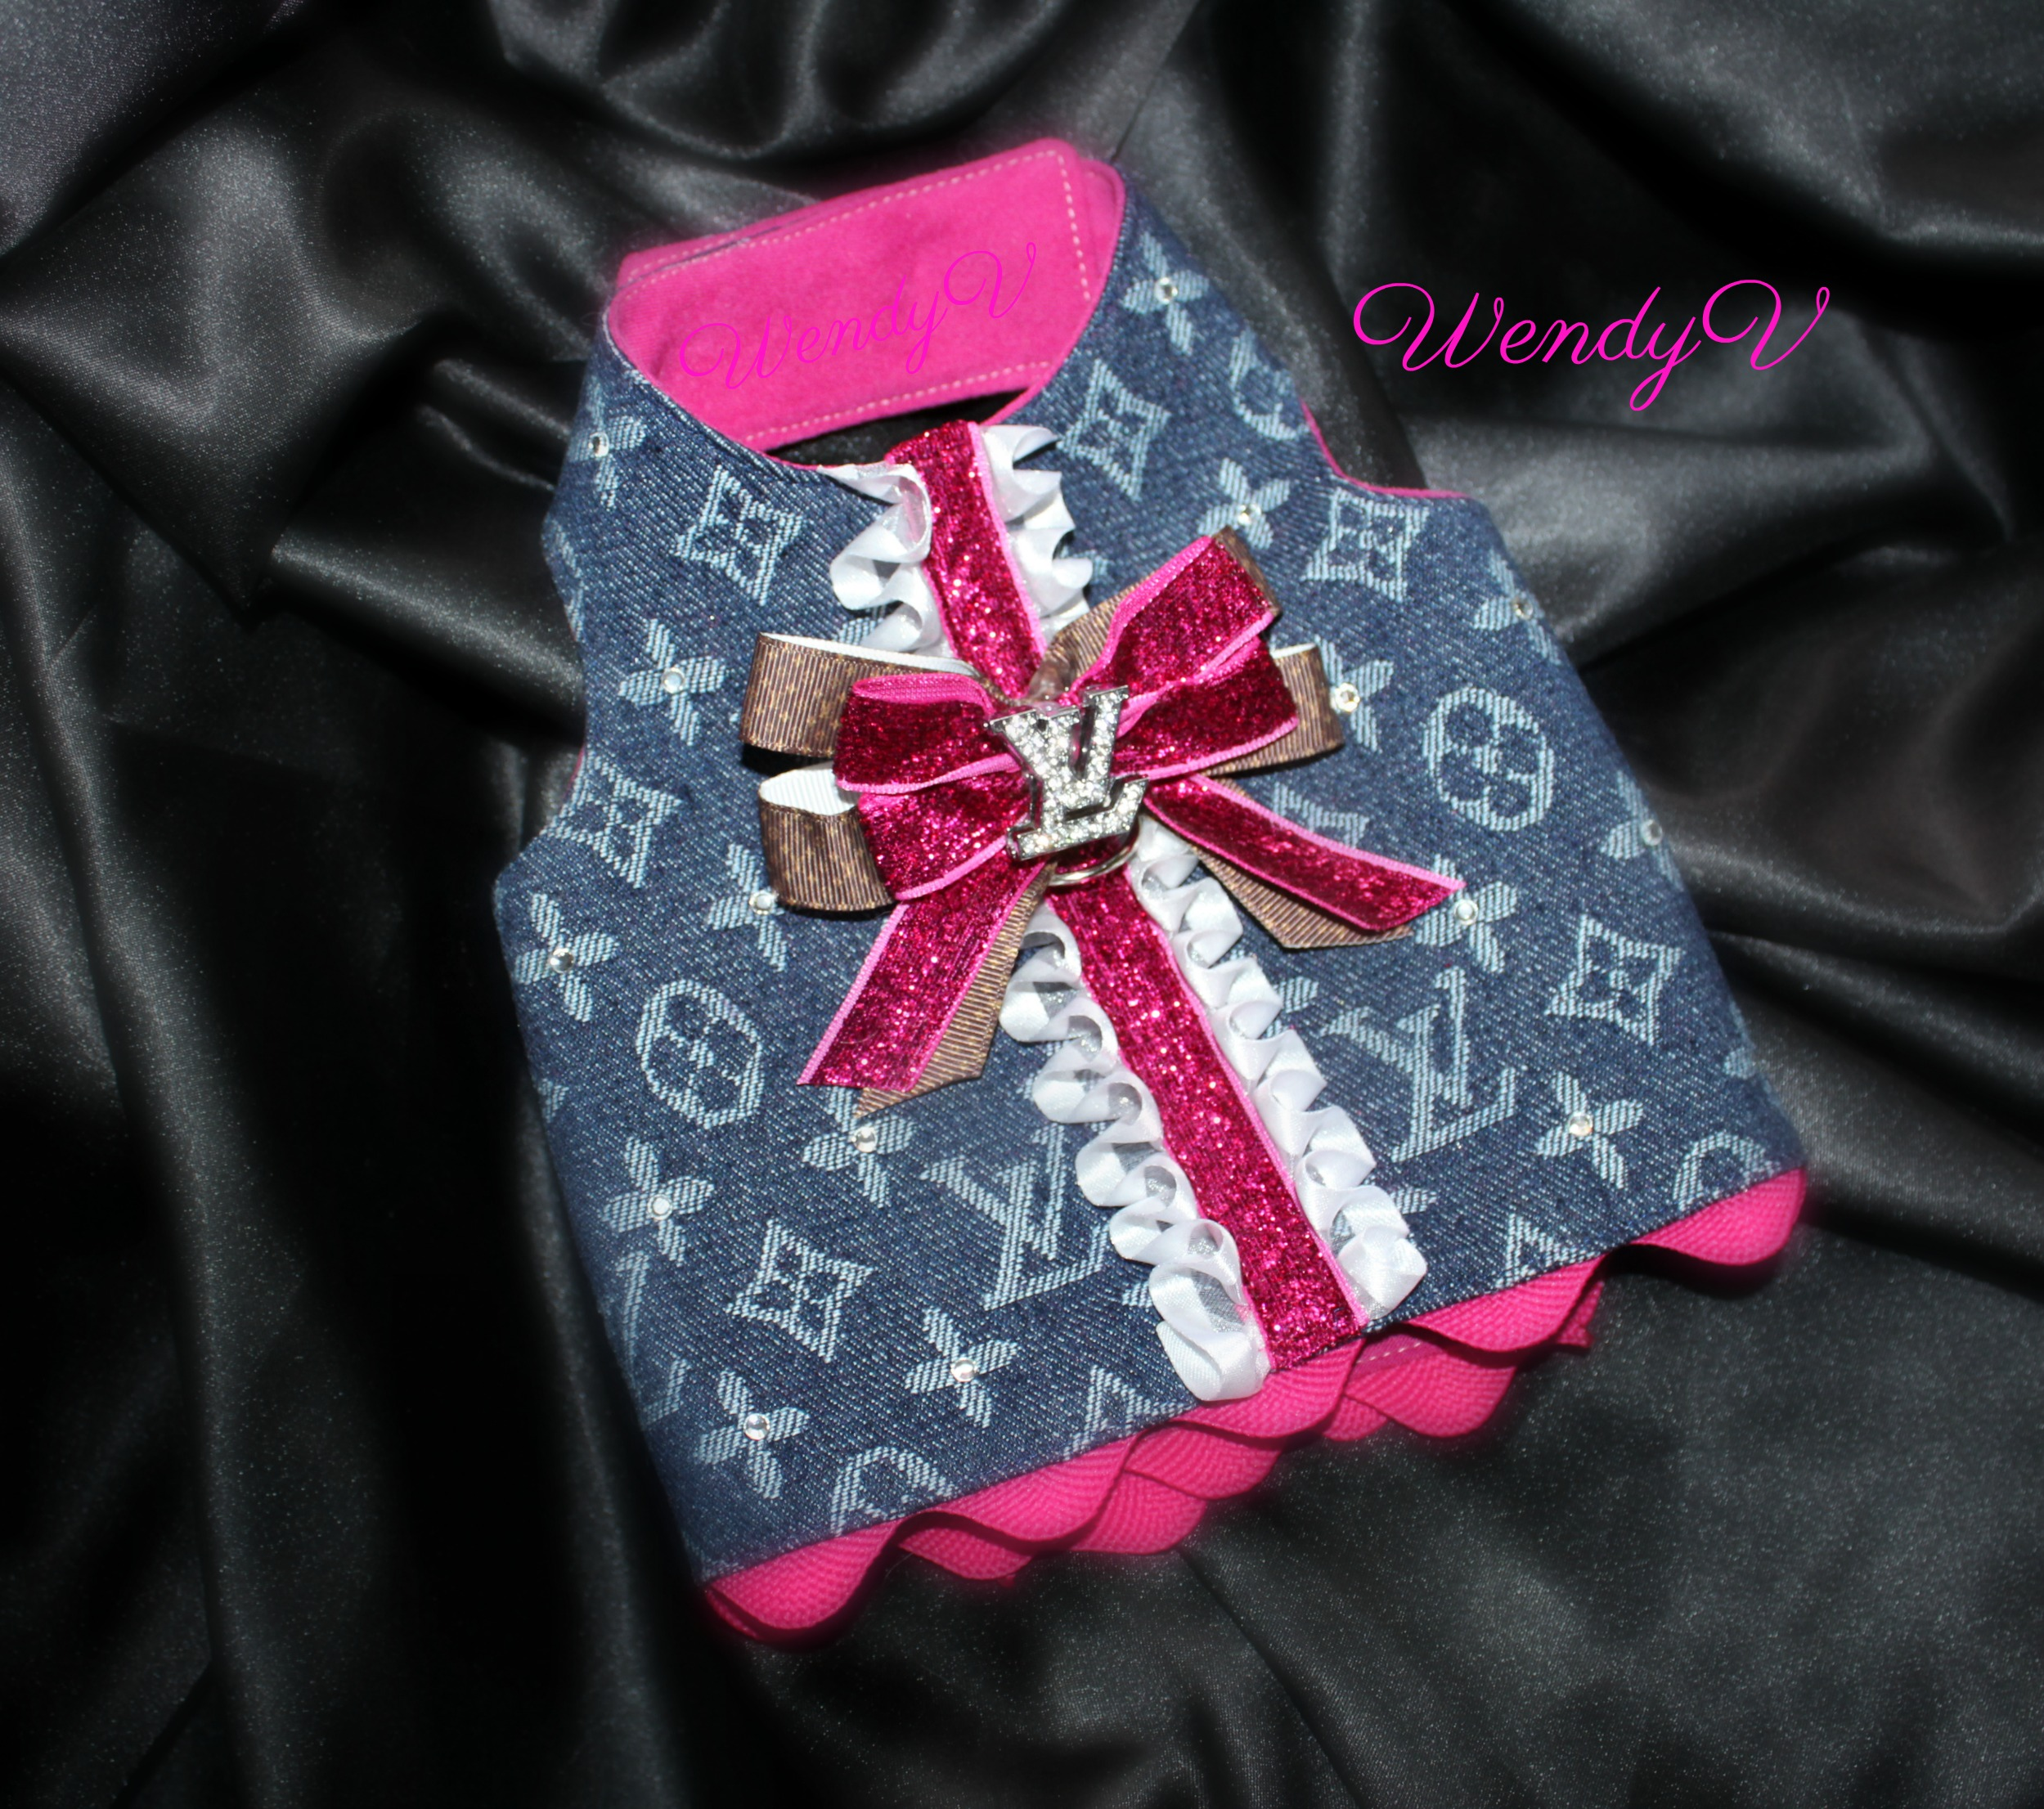 Denim LV Dog harness, Coco's closet, WendysYorkies.com